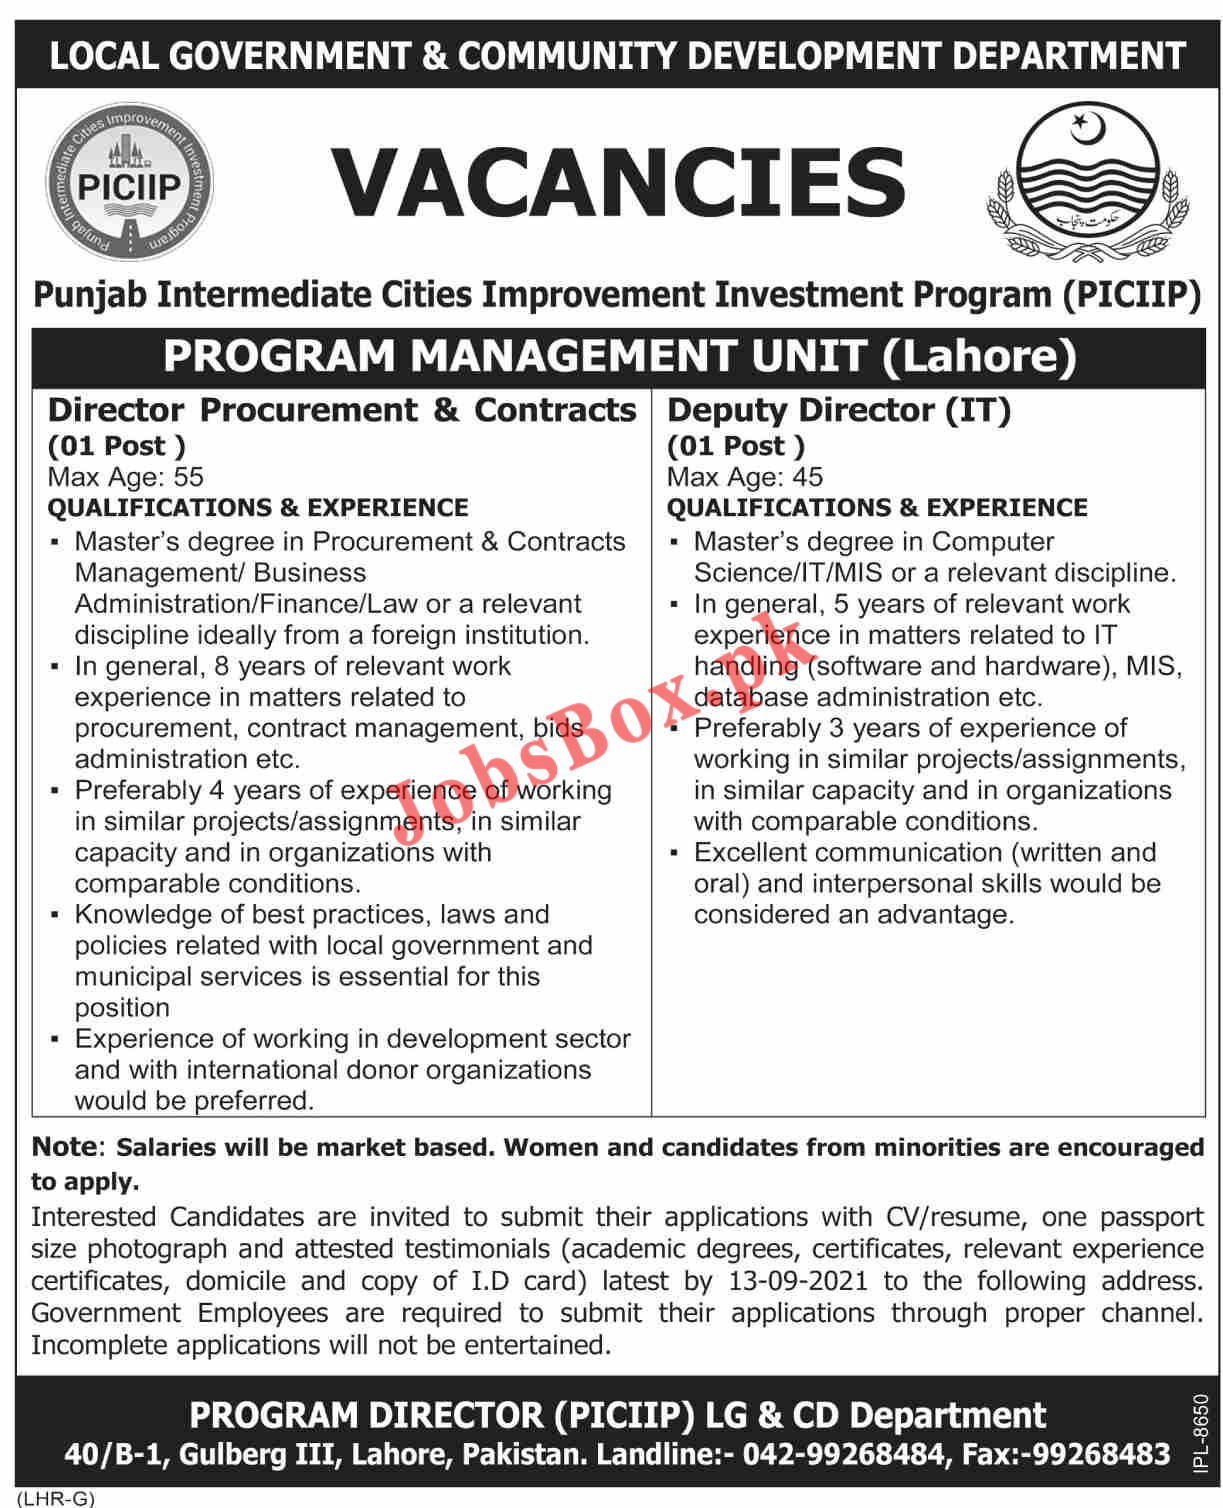 Govt jobs in Punjab 2021 | Local Government and Community Development Department Punjab Jobs 2021